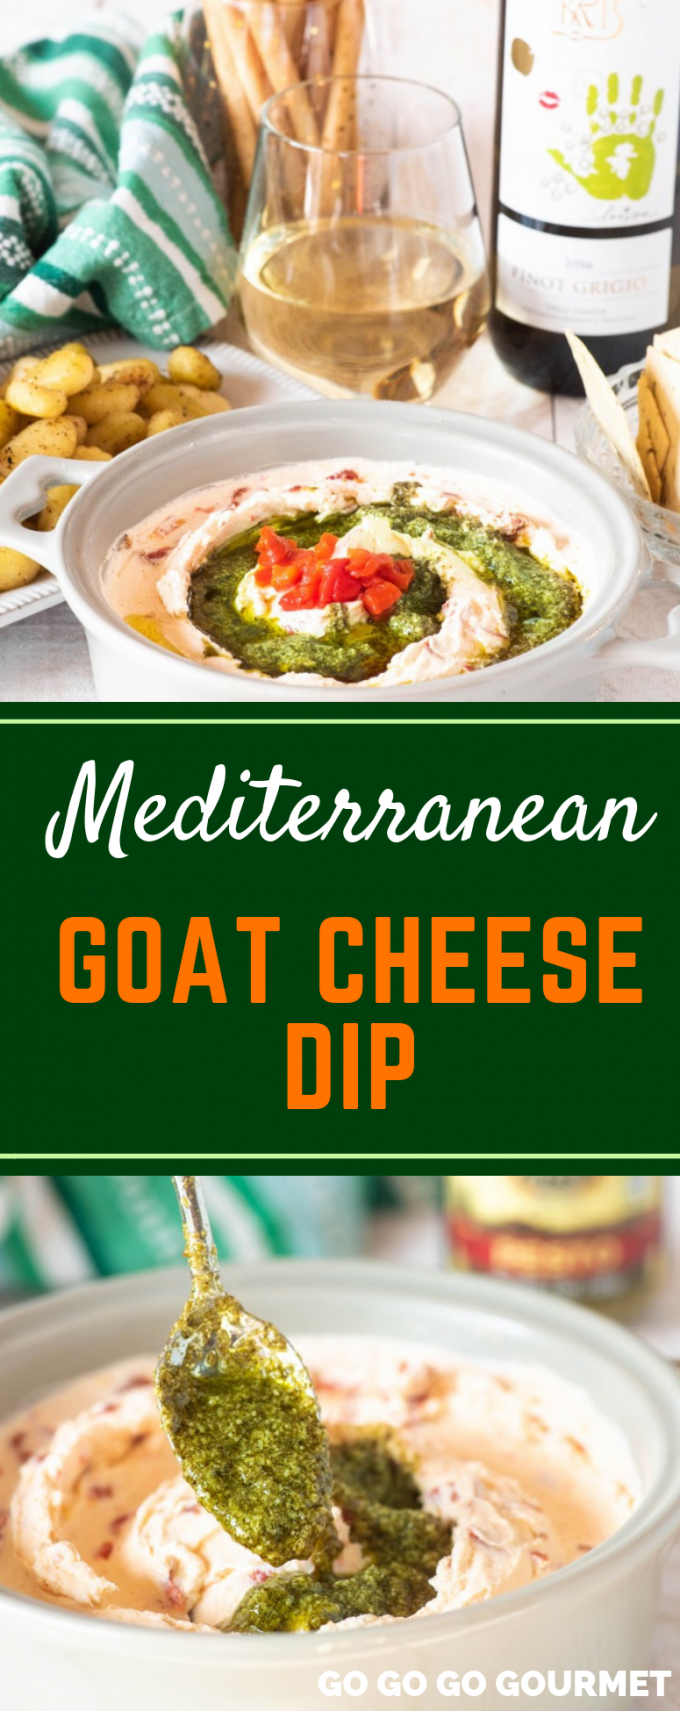 This easy Mediterranean Goat Cheese Dip can be whipped up in an instant thanks to Allesi Foods! They have wonderful products like Sun Dried Tomatoes and Extra Virgin Olive Oil that really send recipes over the top! This dip is perfect for all of your dinner parties! #ad #AlessiWay #gogogogourmet #mediterraneangoatcheesedip #easypartyappetizers  via @gogogogourmet